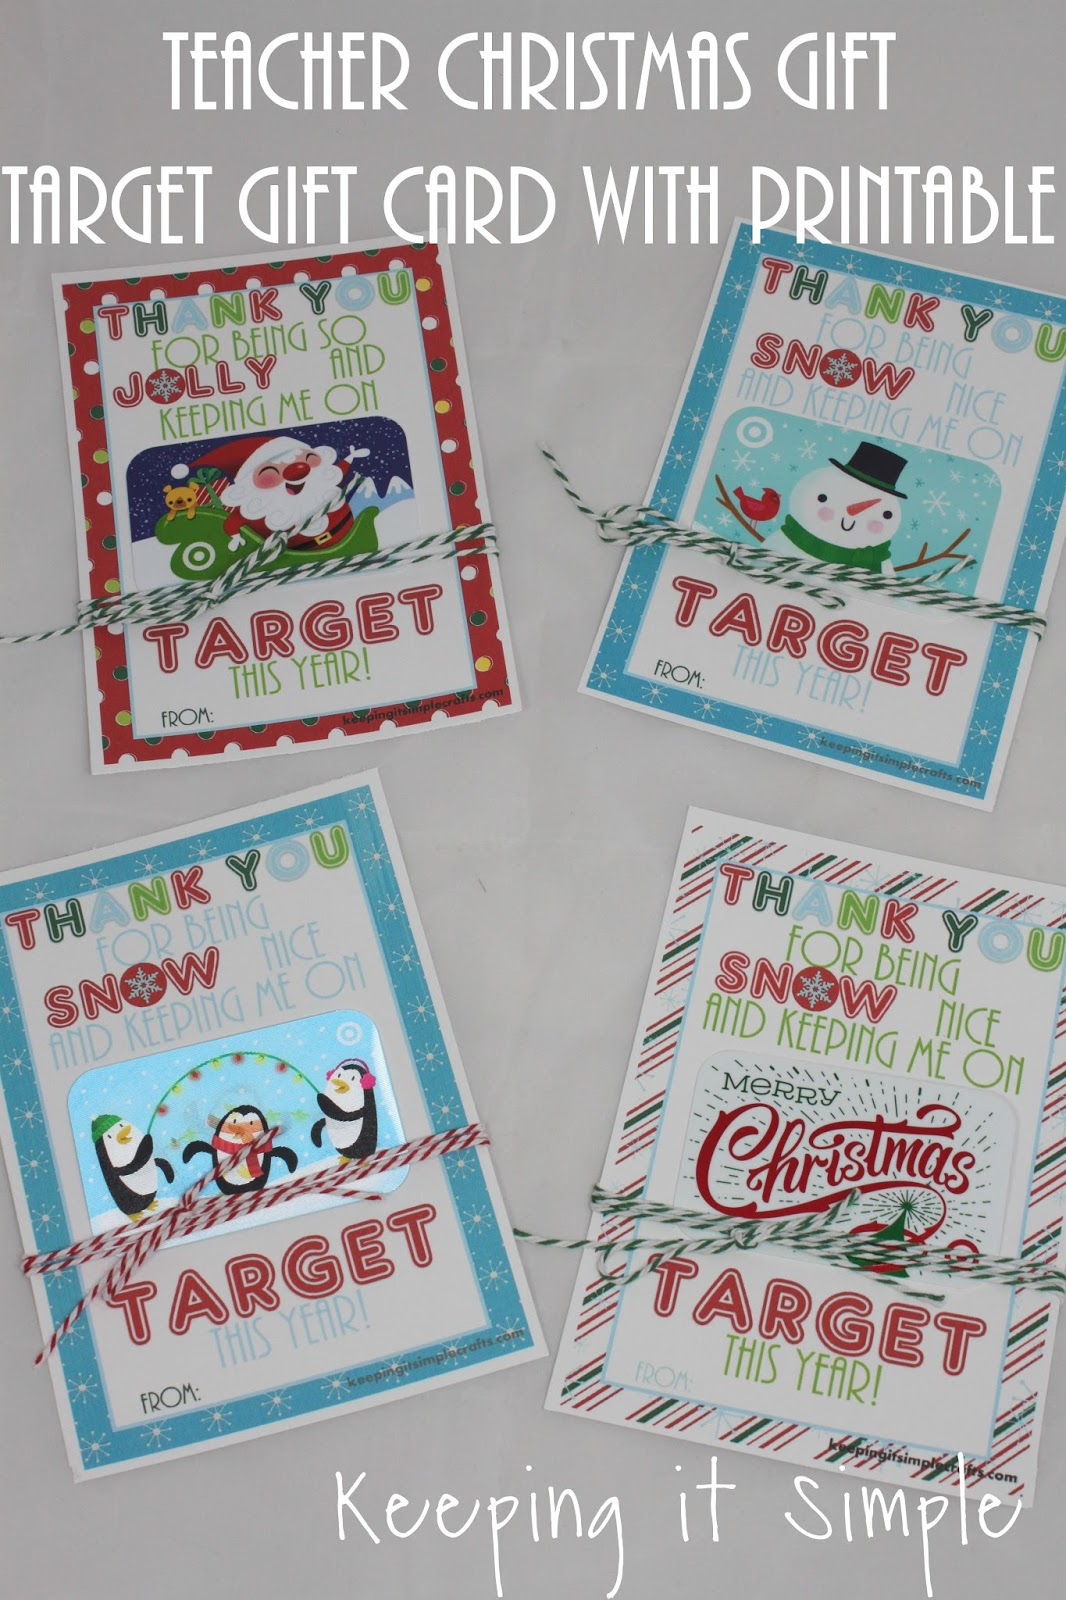 Teacher Christmas Gift Idea Printable For Target Gift Card